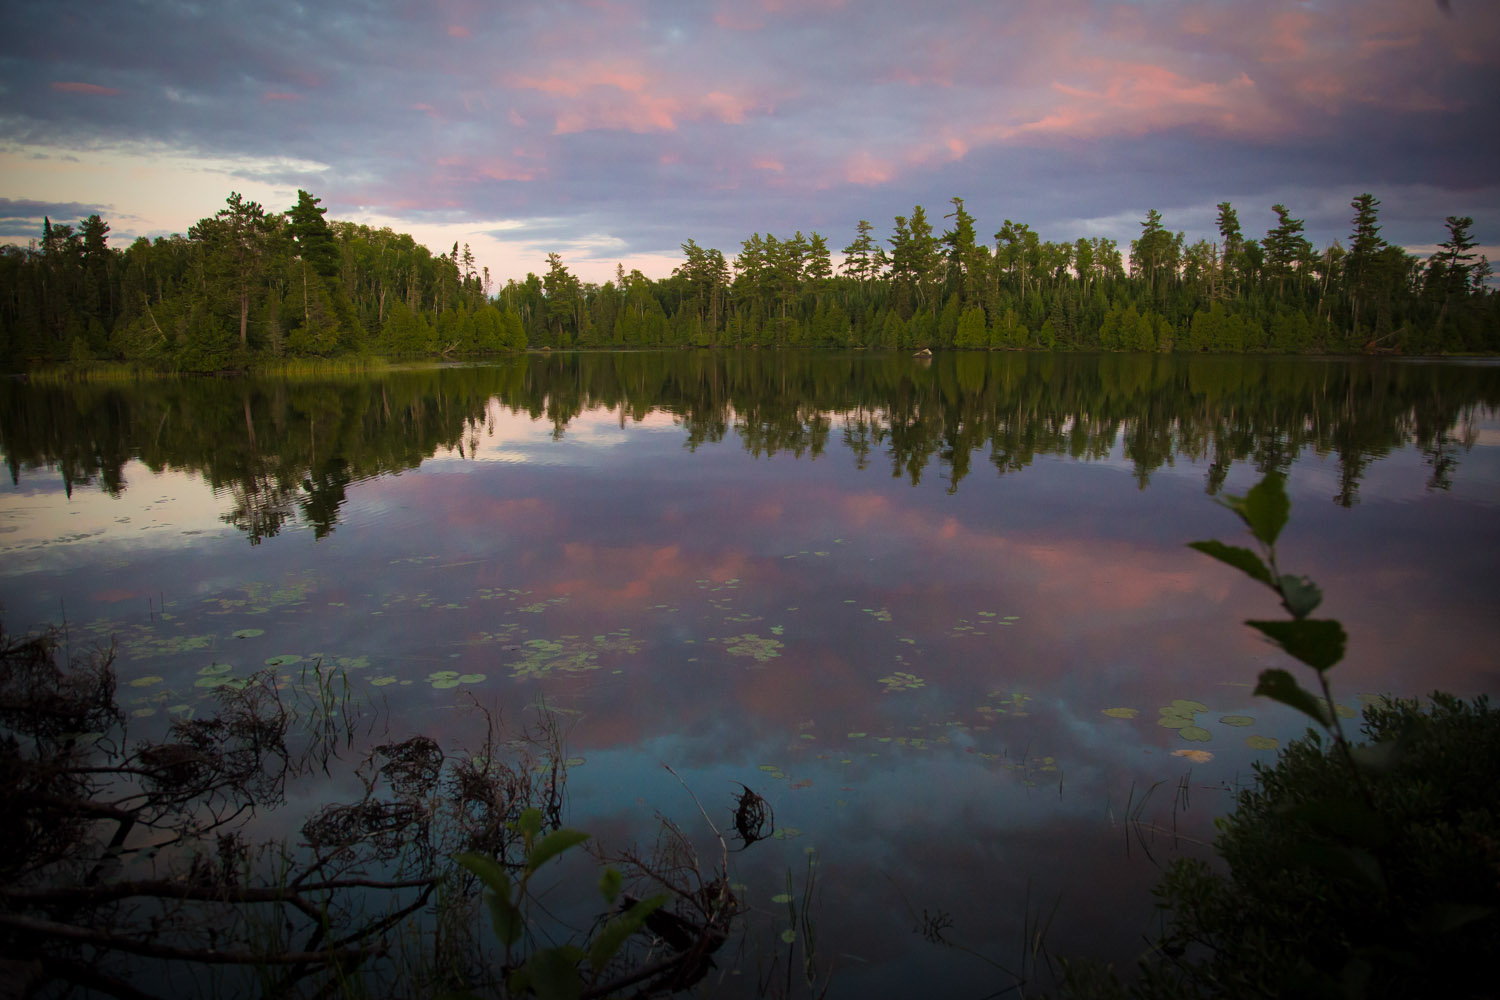 The sunset from our campsite on horseshoe lake that night was so worth the paddle in the rain!